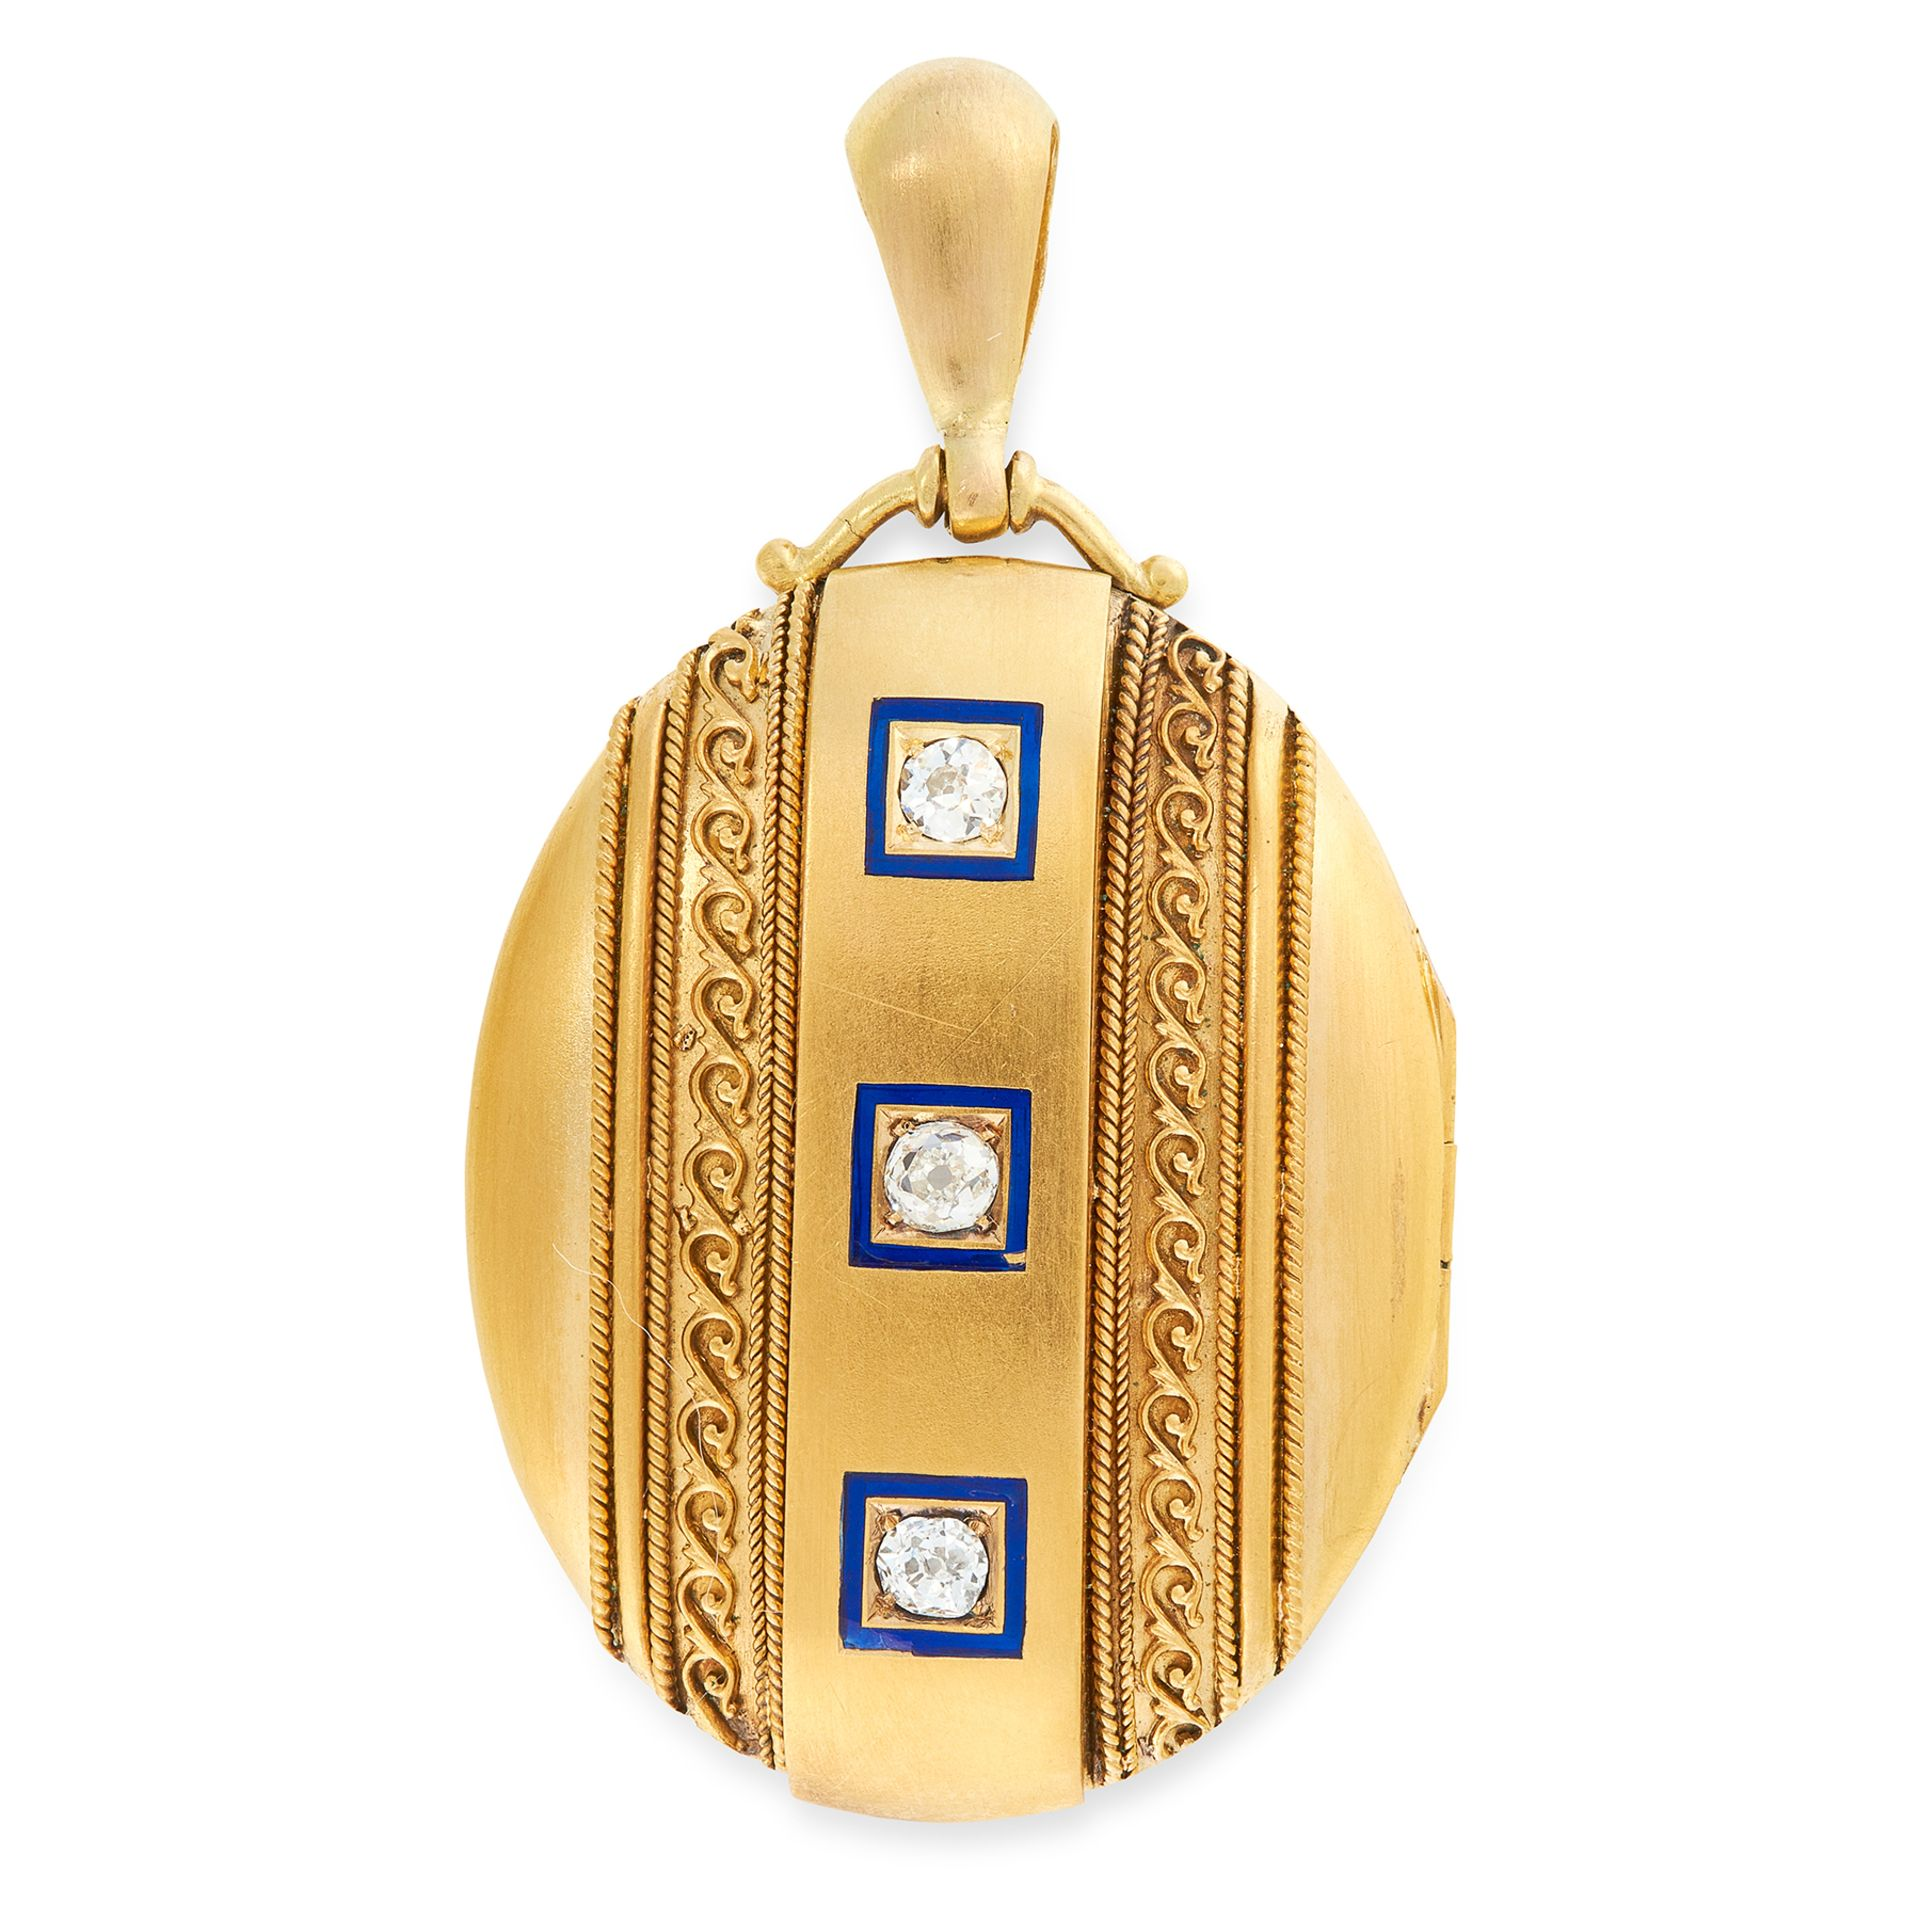 AN ANTIQUE DIAMOND AND ENAMEL MOURNING LOCKET PENDANT in high carat yellow gold, the oval hinged